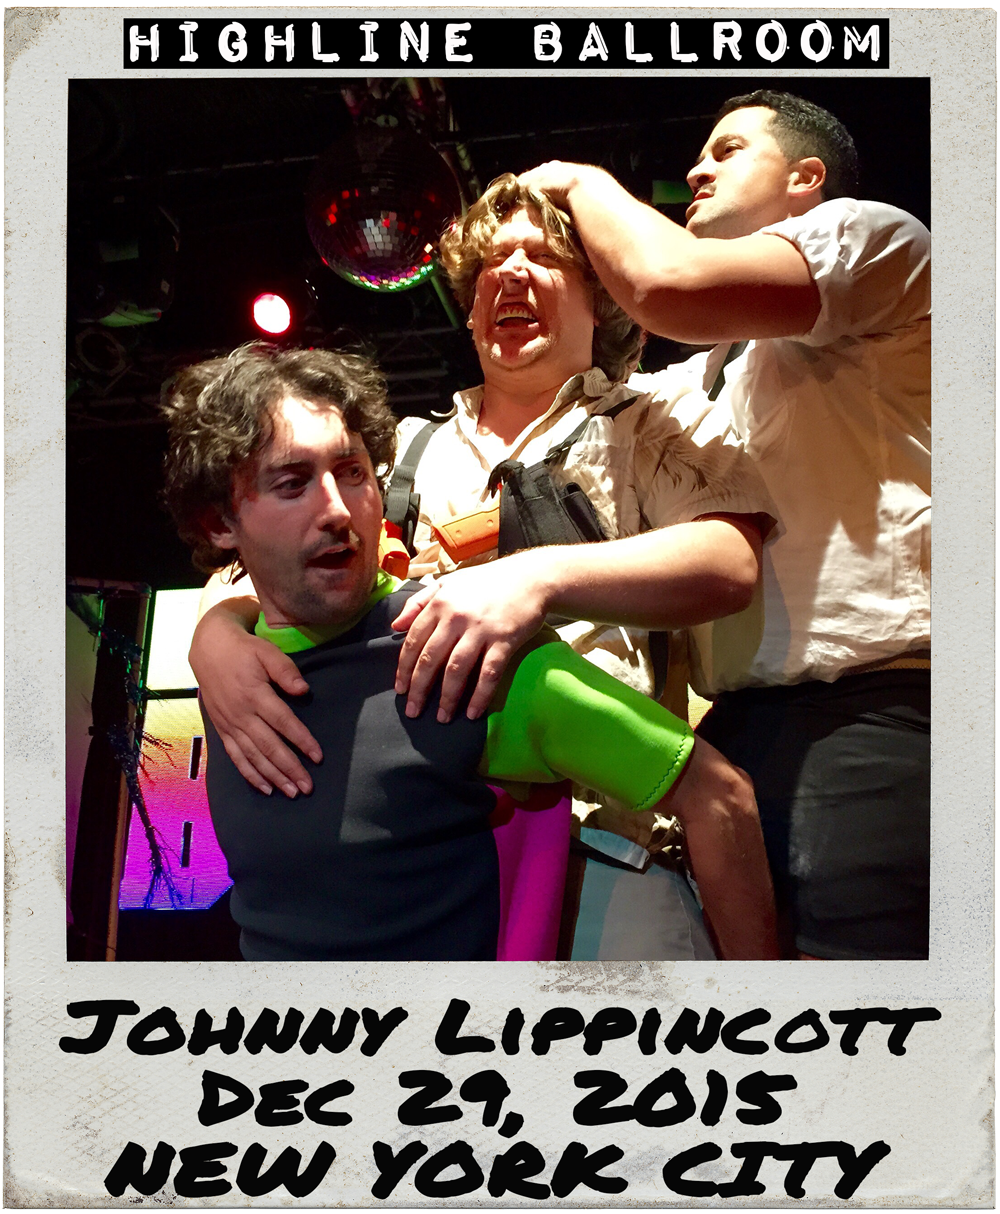 12_29_15_Johnny-Lippincott_NYC.png